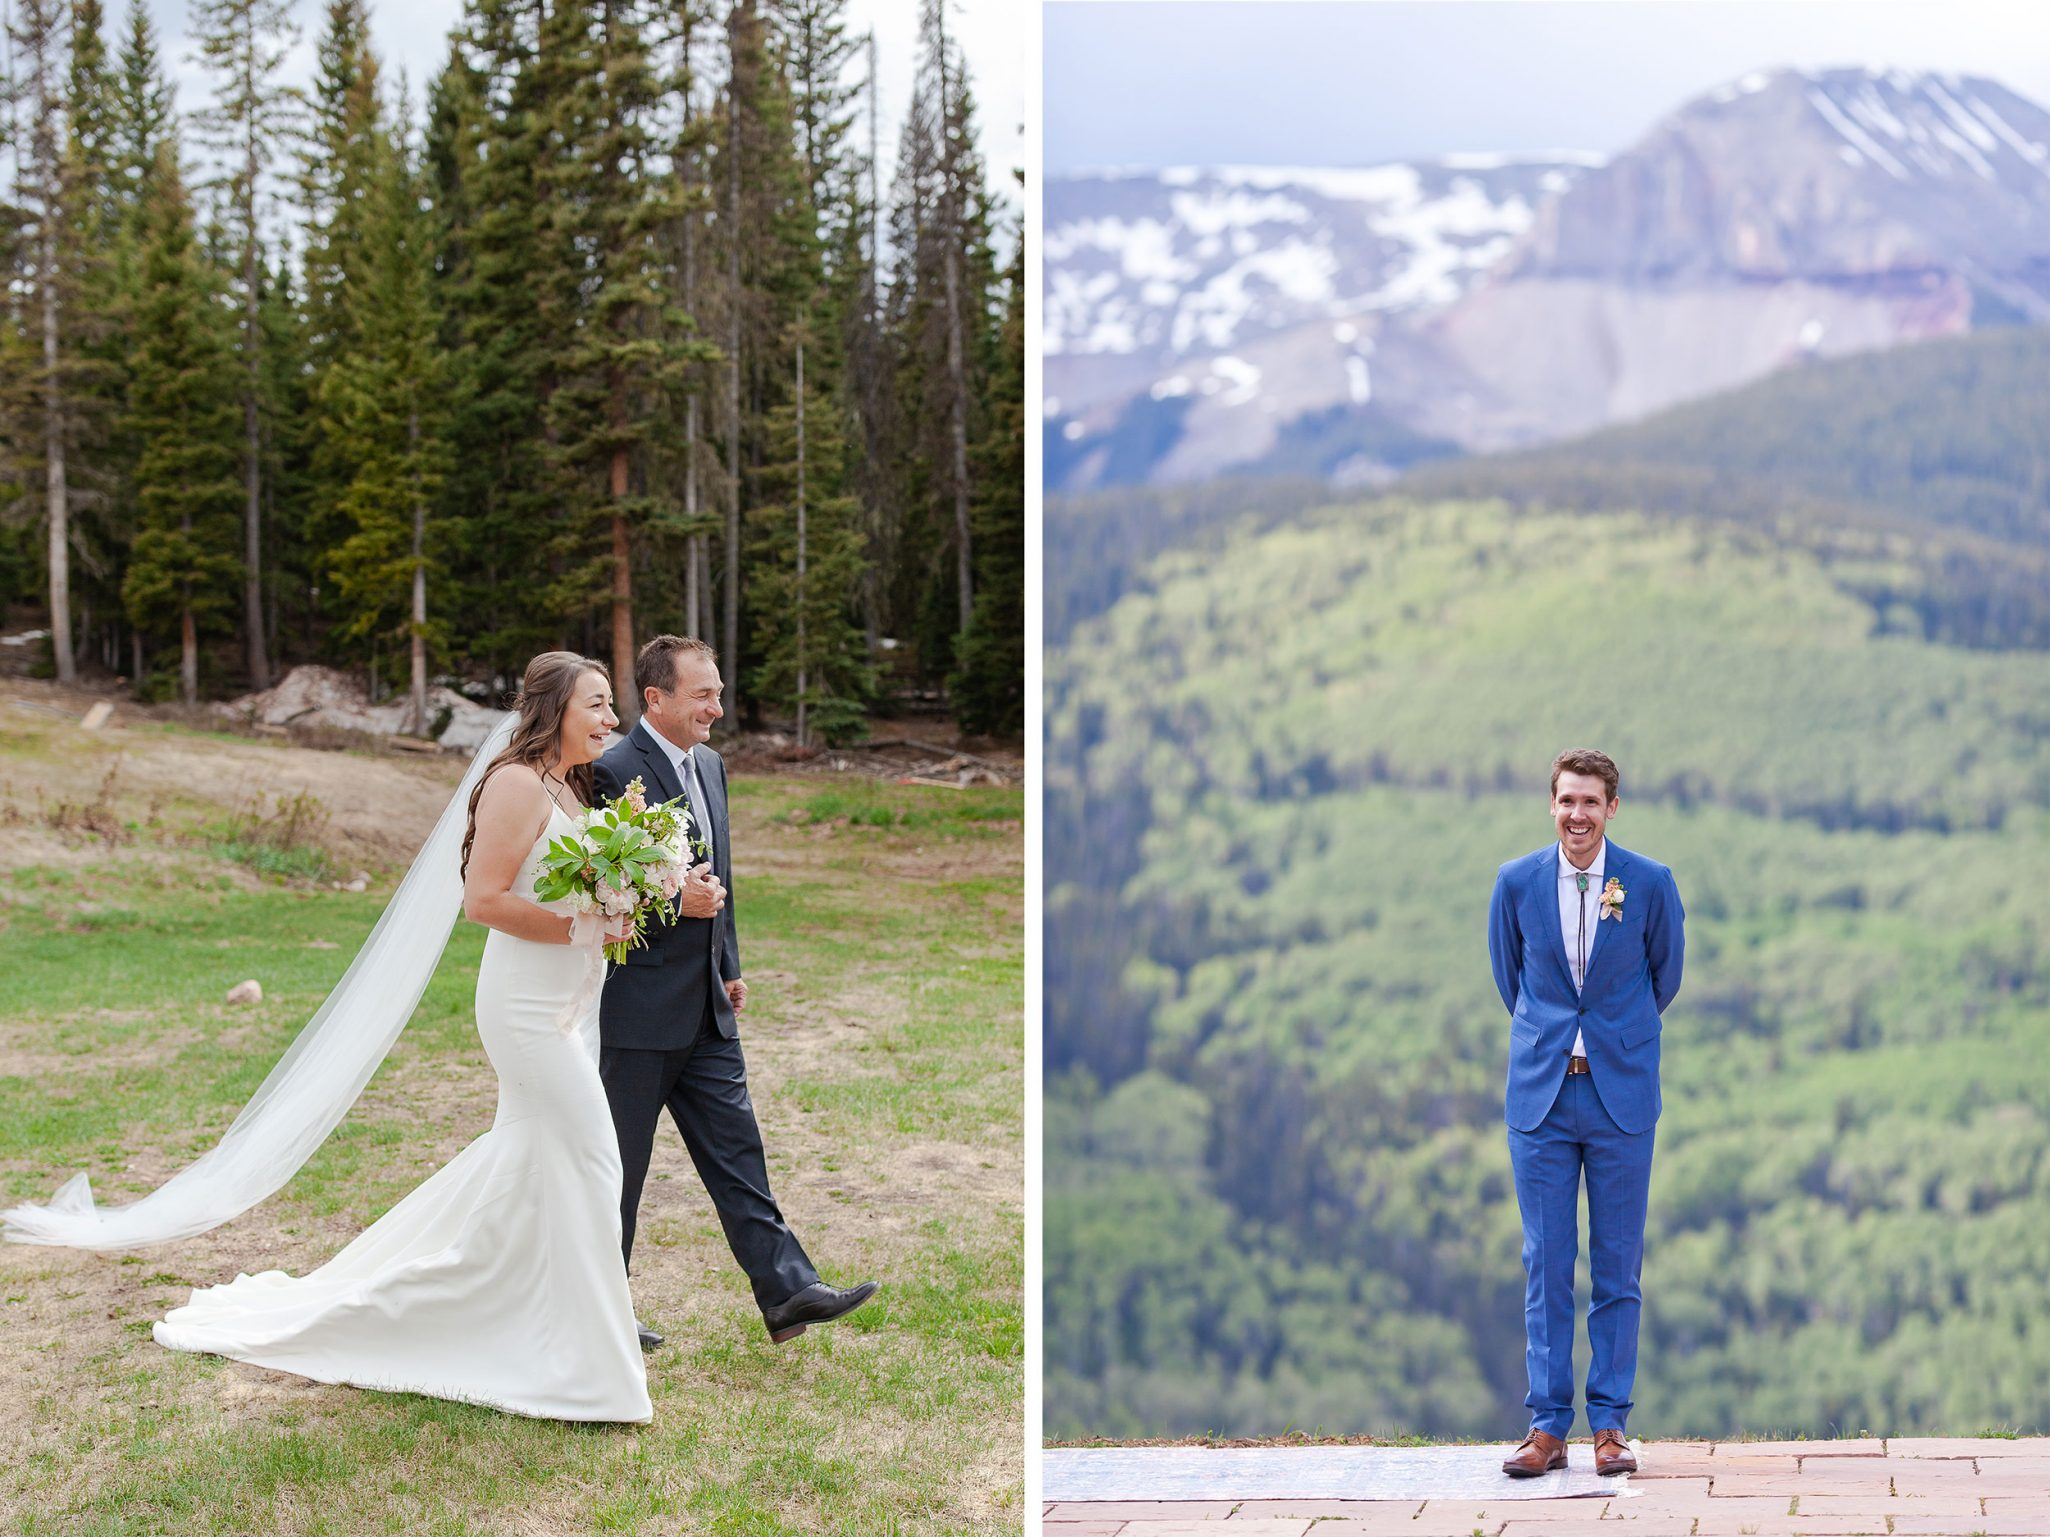 Walking down the aisle in the mountain